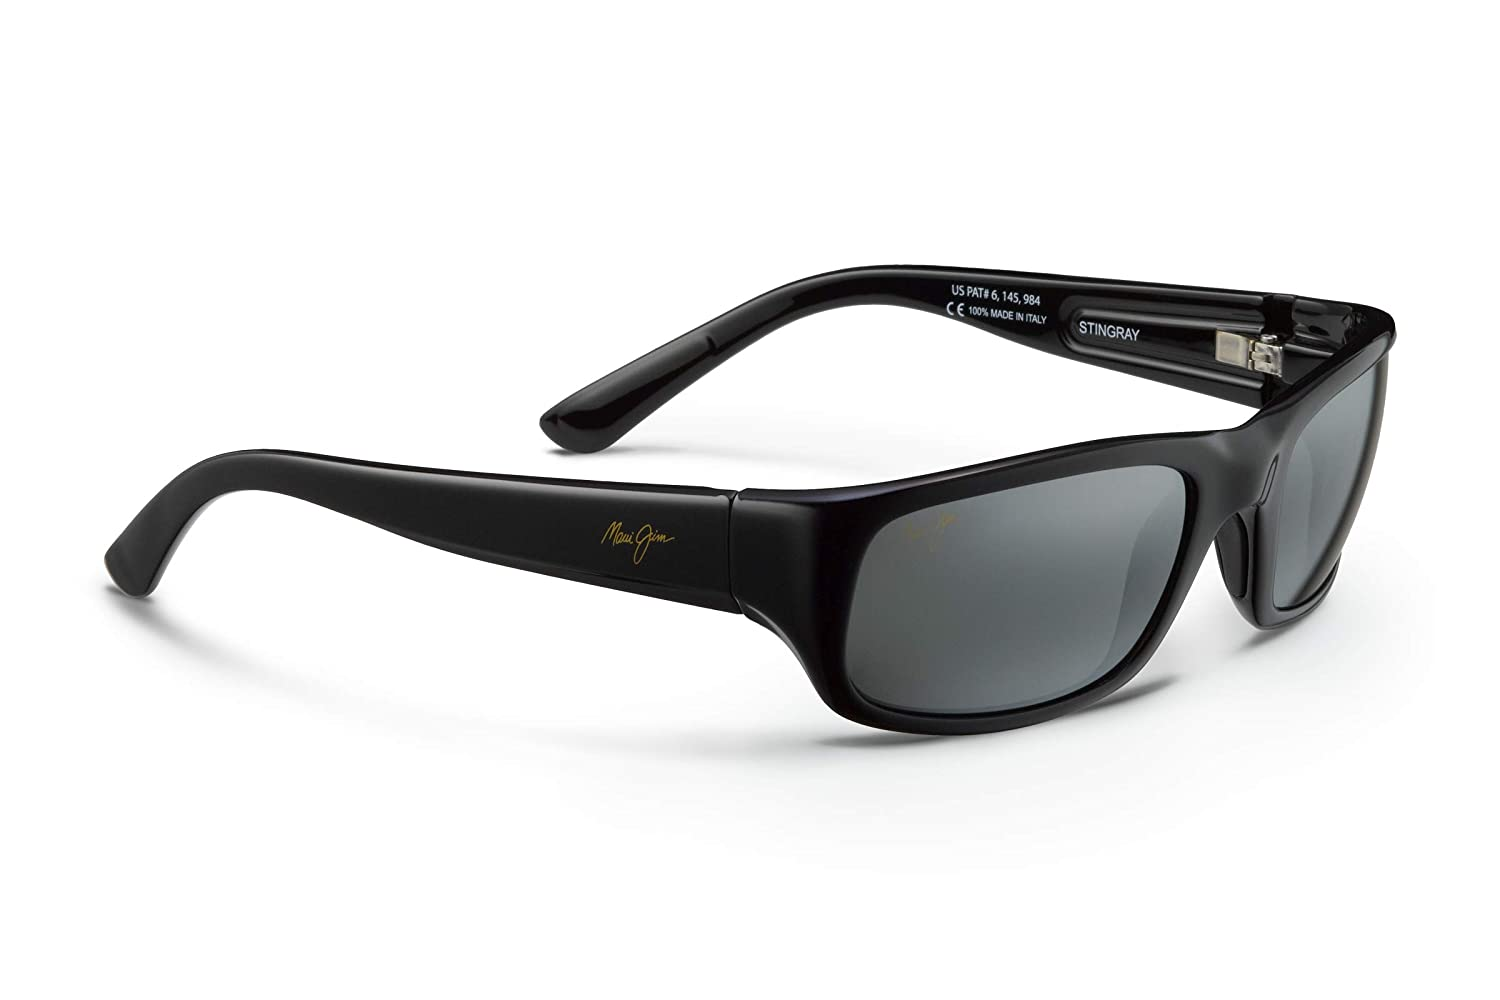 a605c57dd7 Amazon.com  Maui Jim Stingray 103-02